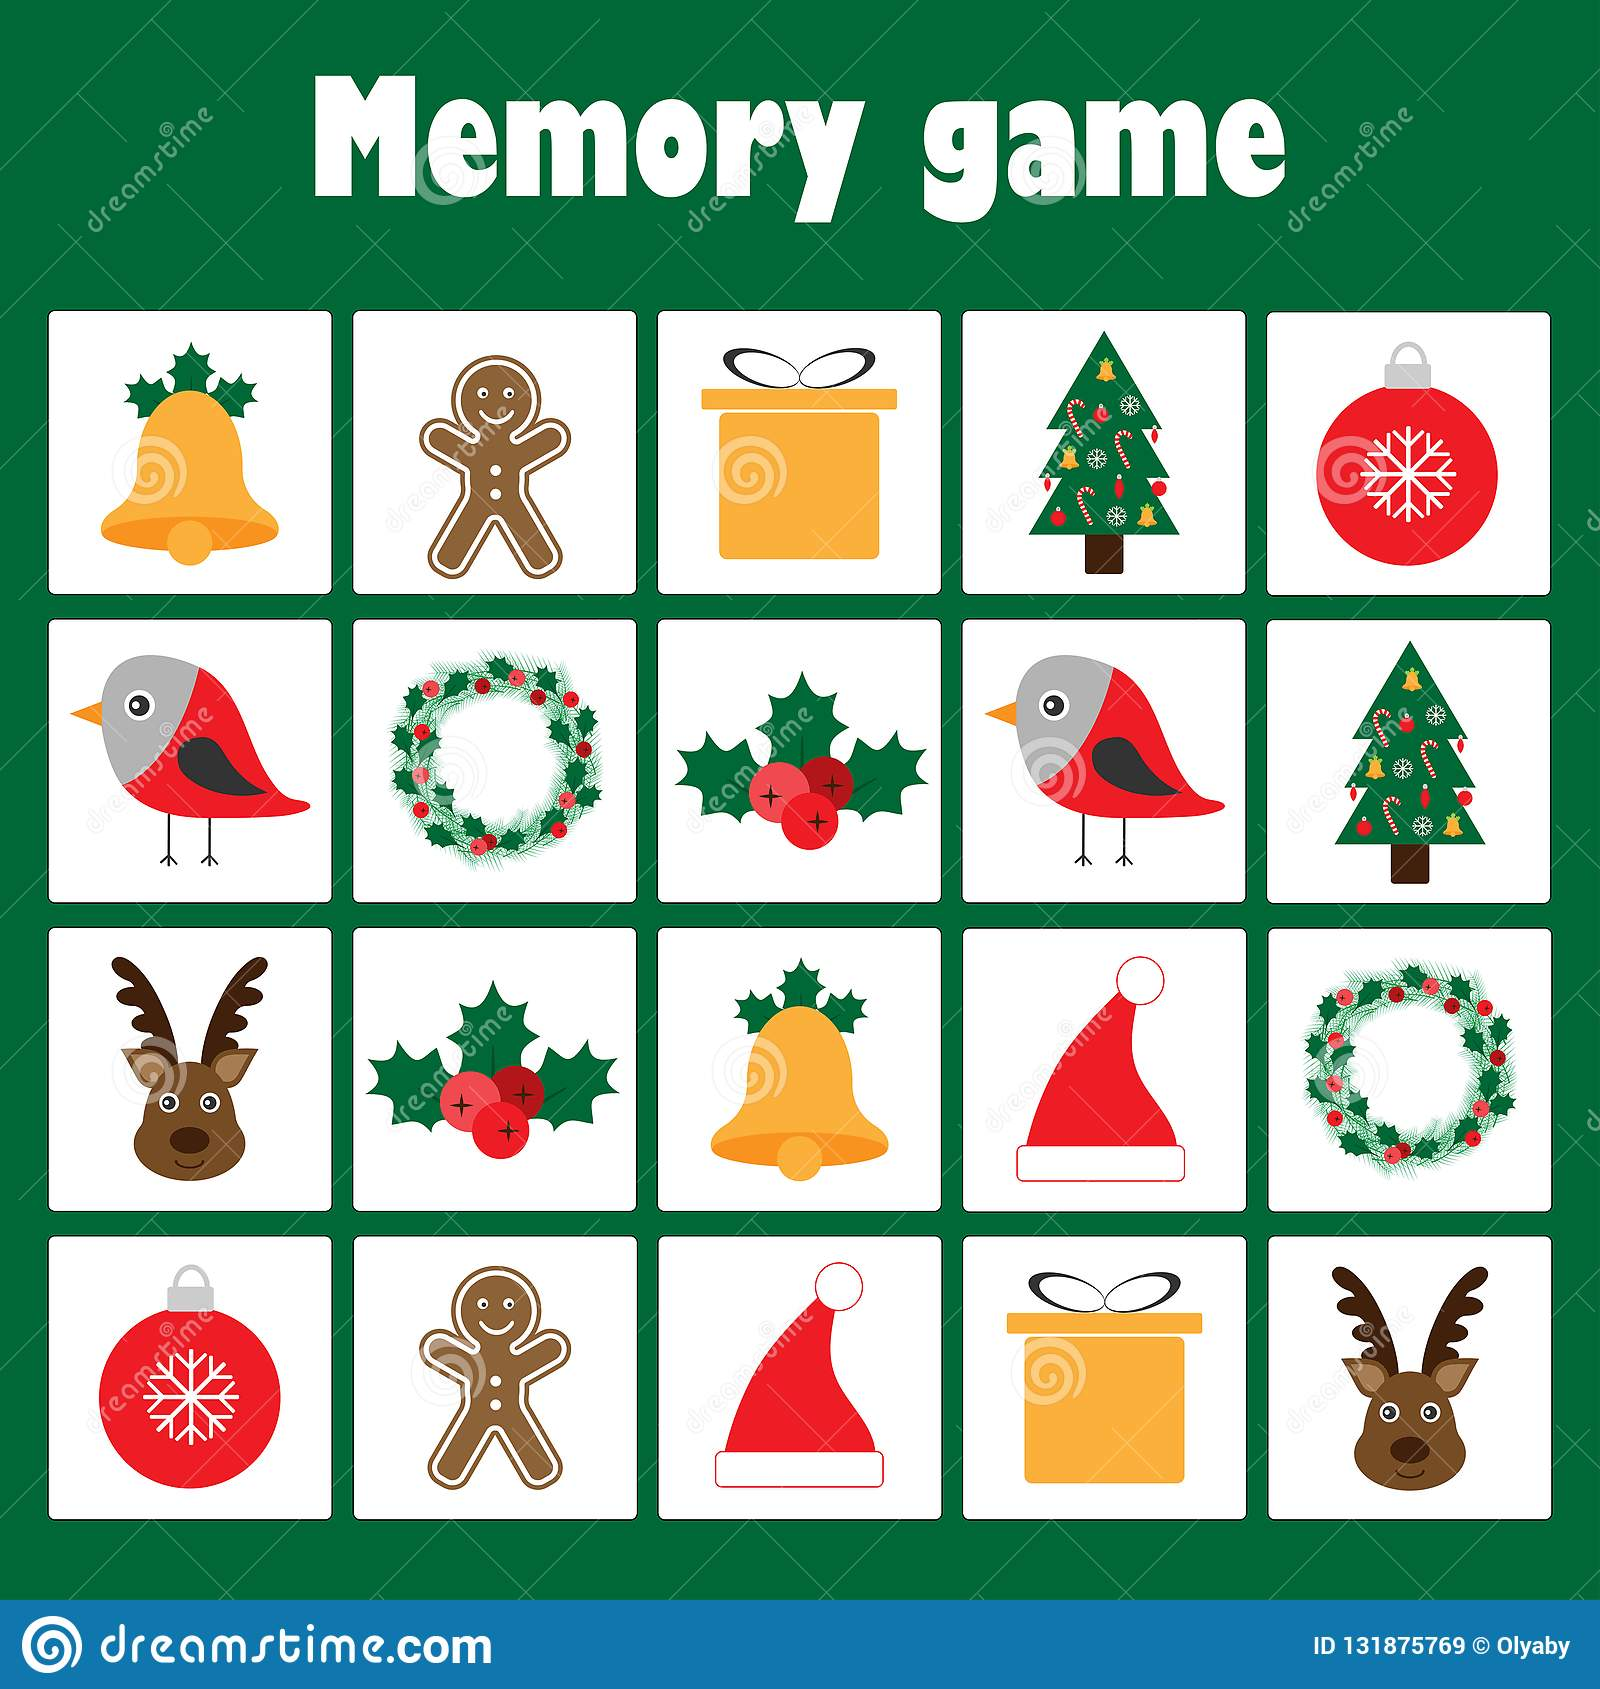 Memory game with pictures - christmas theme for children, xmas fun education game for kids, preschool activity, task for the